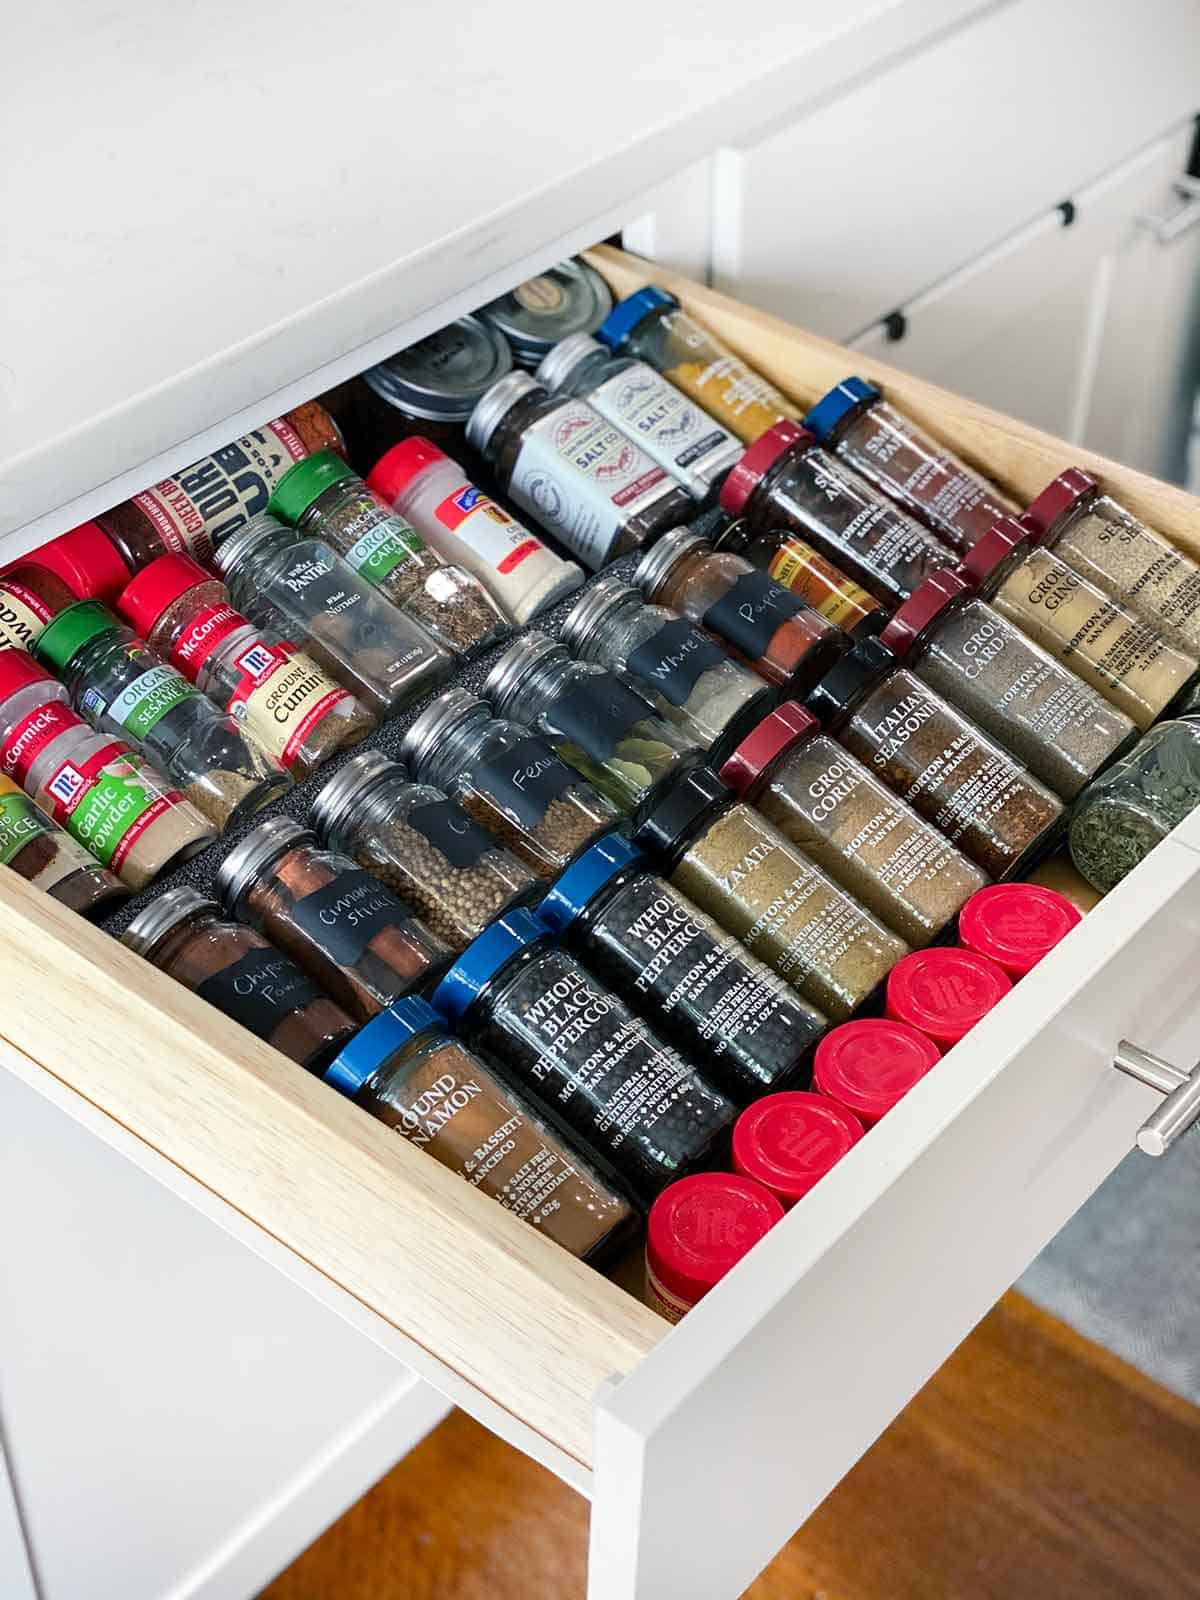 A drawer open with spices inside arranged on a drawer spice rack.